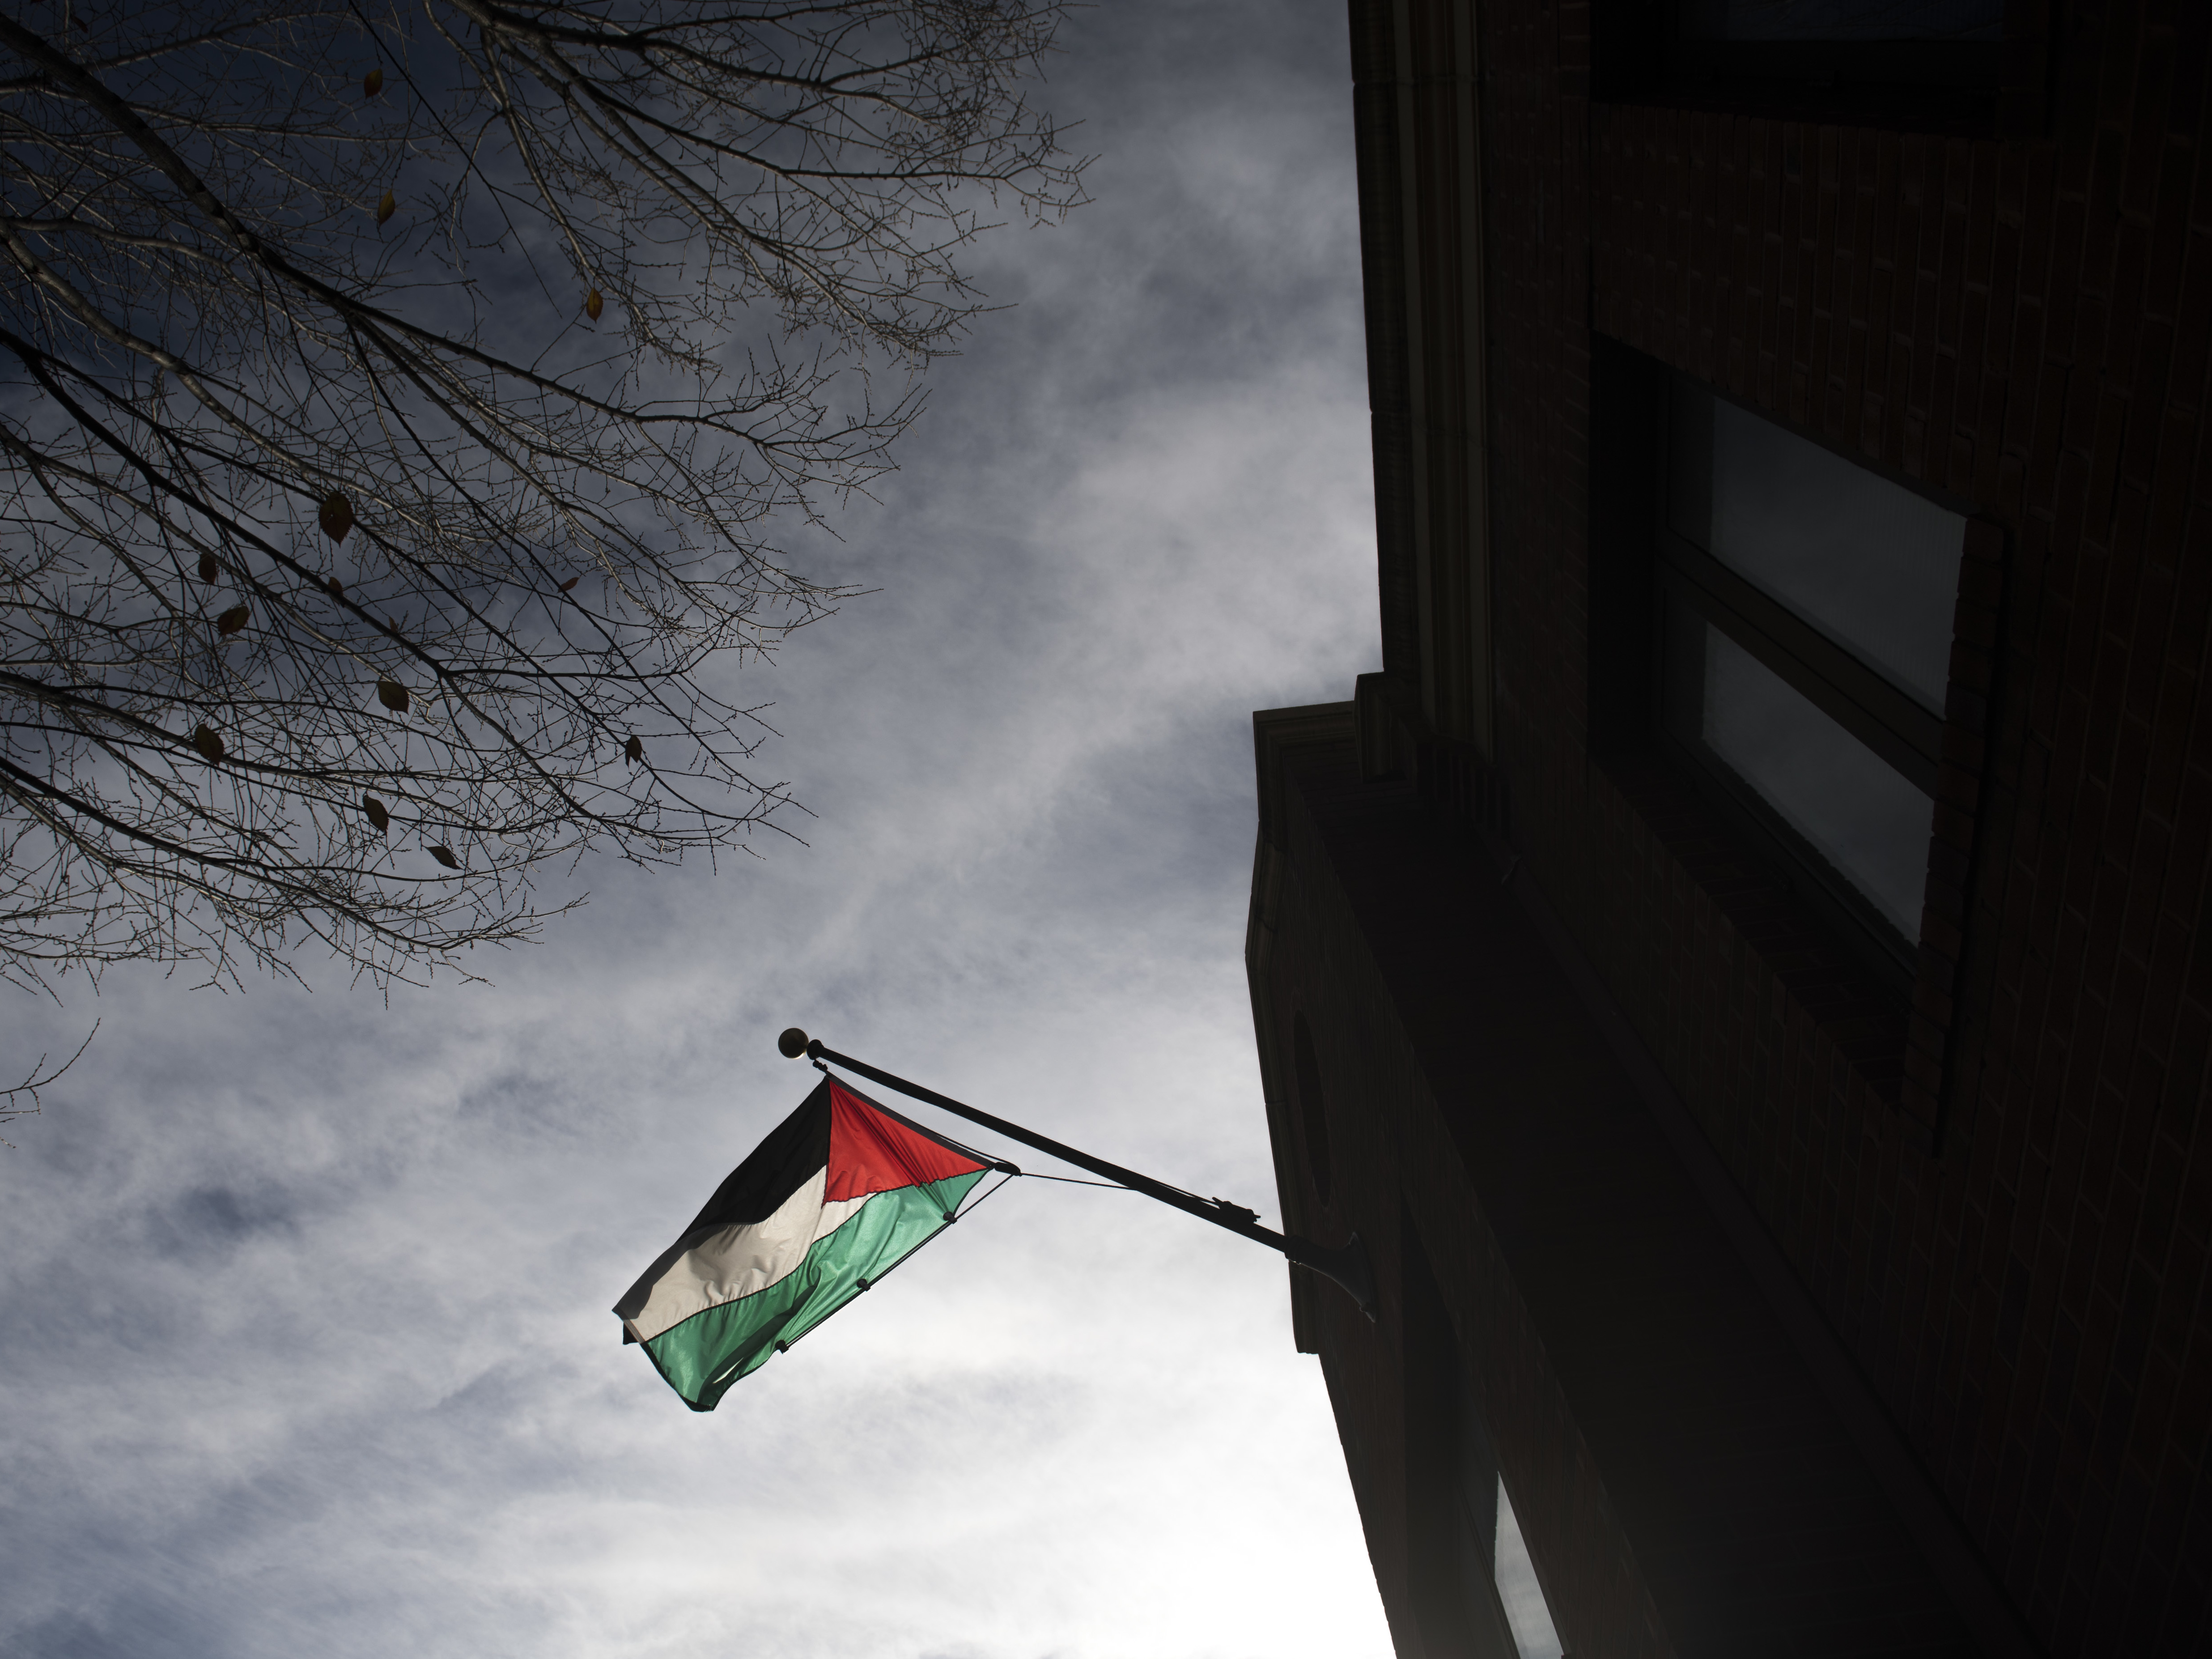 Palestinians Can Likely Keep Their Office In Washington, DC - For Now